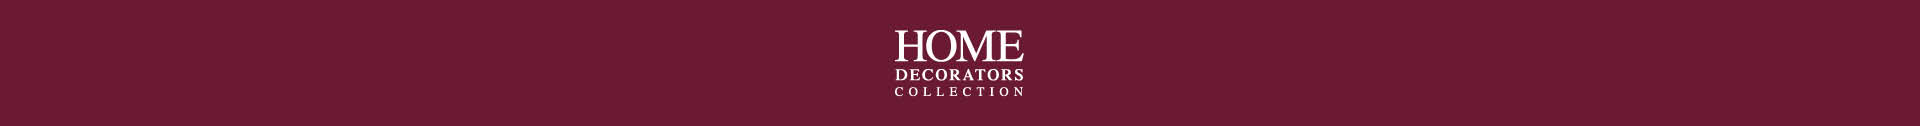 Home Decorators Collection